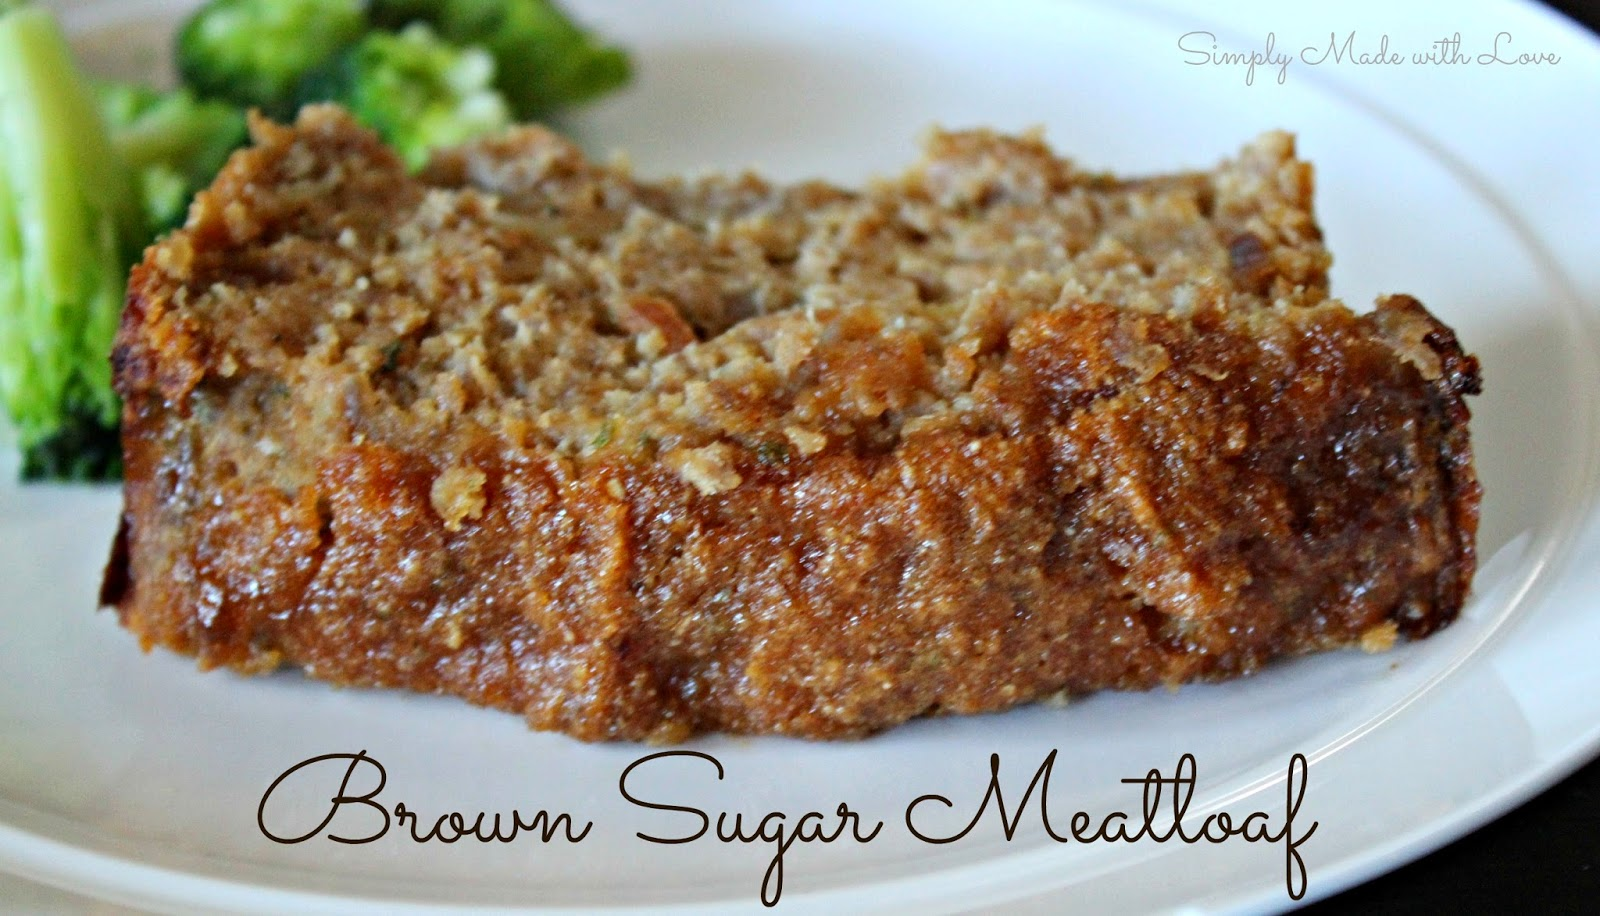 apricot brown sugar ham meatloaf with brown sugar brown sugar meatloaf ...